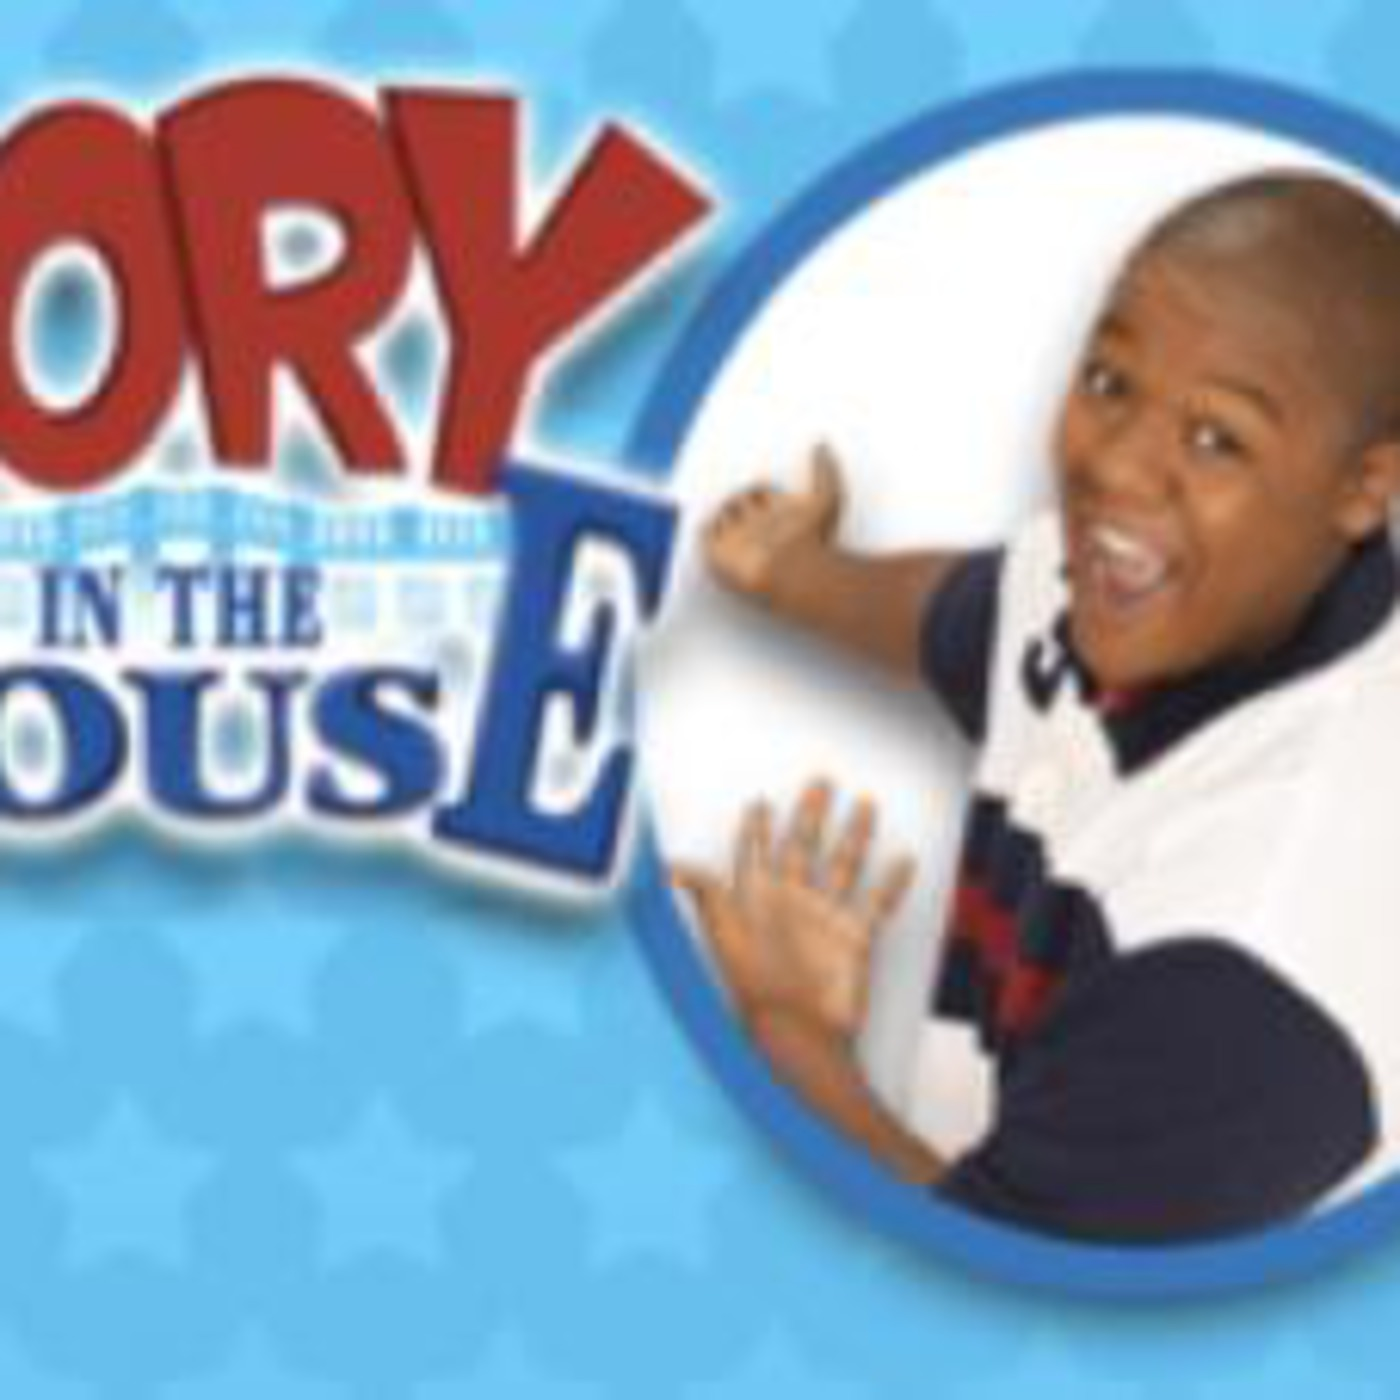 Cory in the house theme song movie theme songs amp tv soundtracks